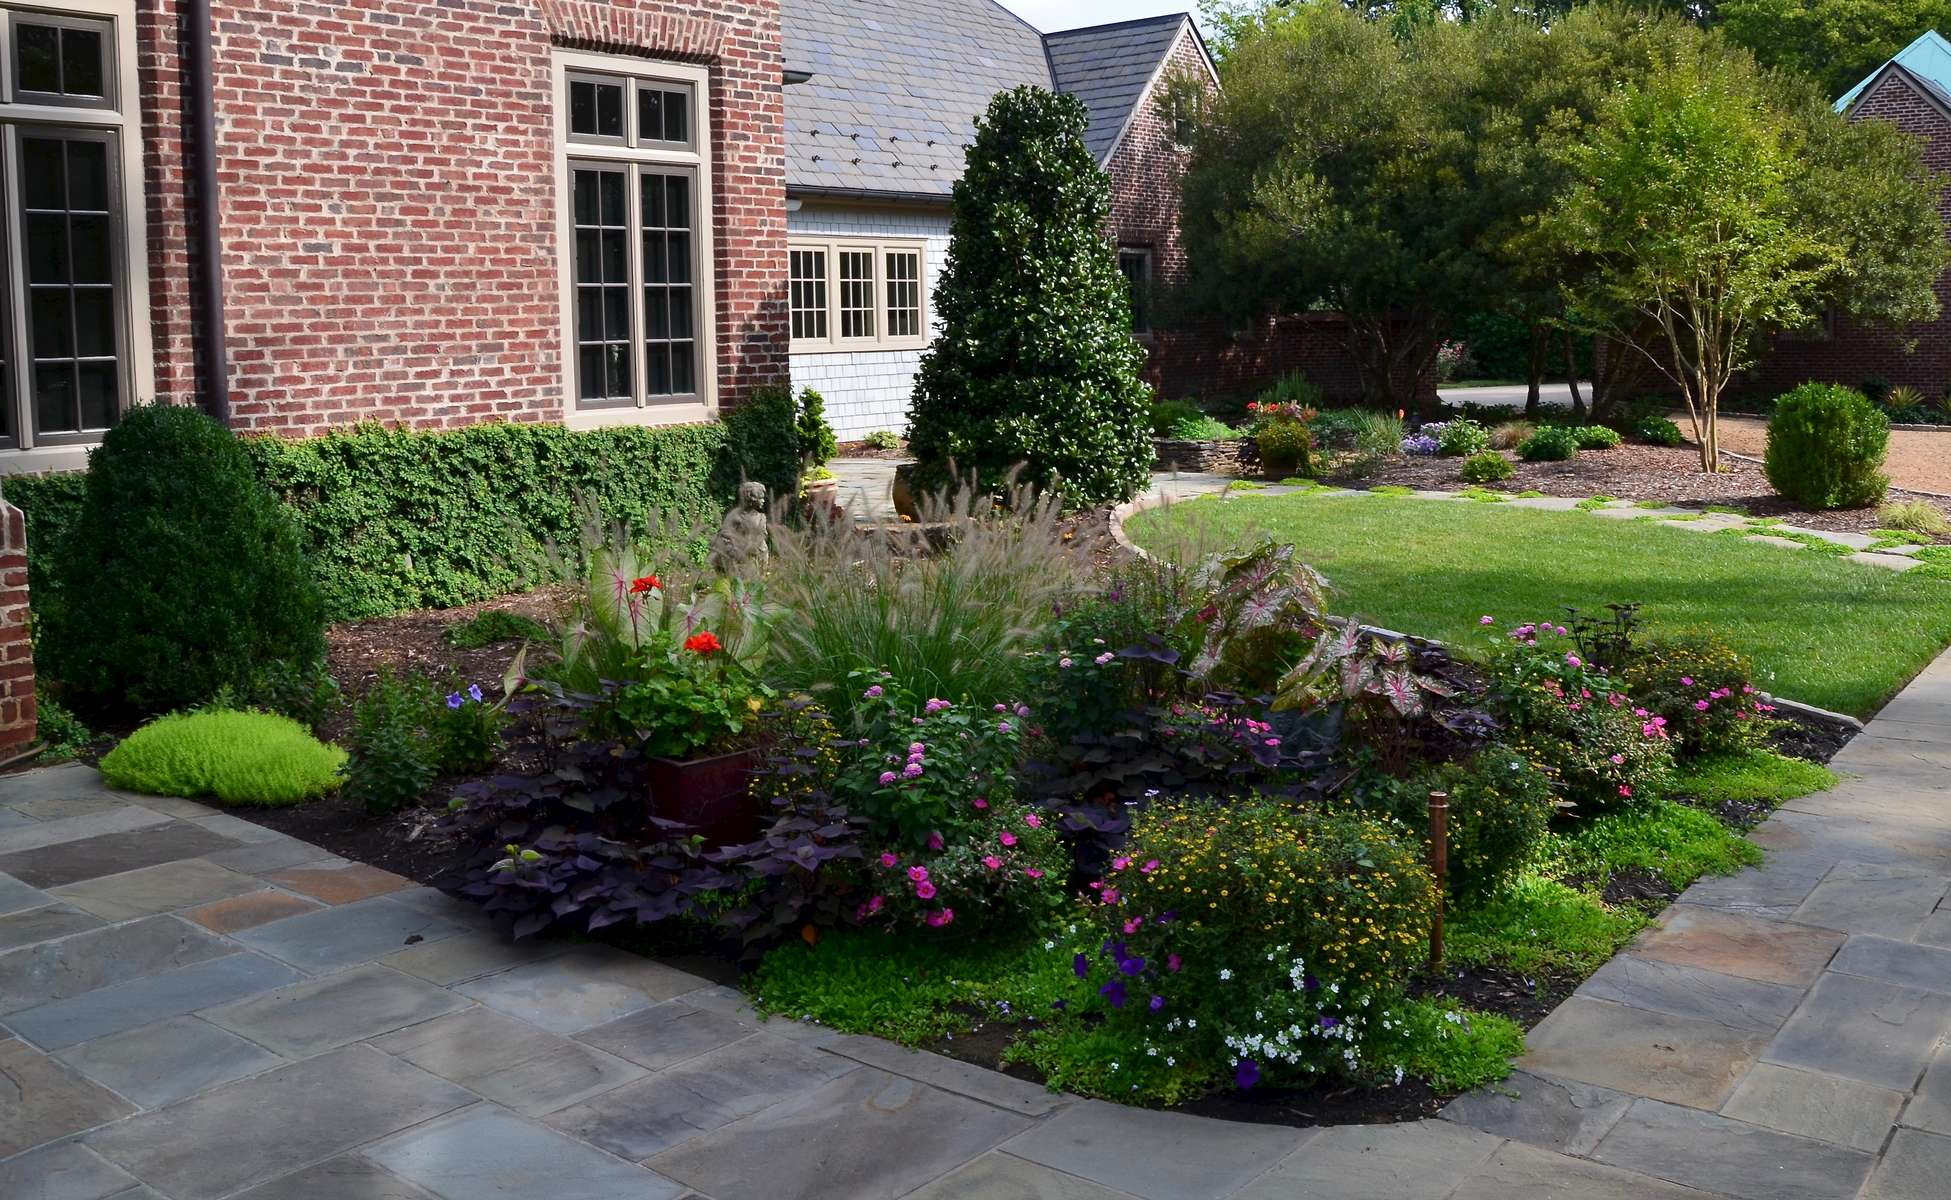 This area heralds the entrance to the main house. Complete with angelic-inspired statuary and adorned with a carefully planned container garden filled perennials, flowing vines and annuals such as geraniums, sweet potatoe vine, roses and decorative grasses.